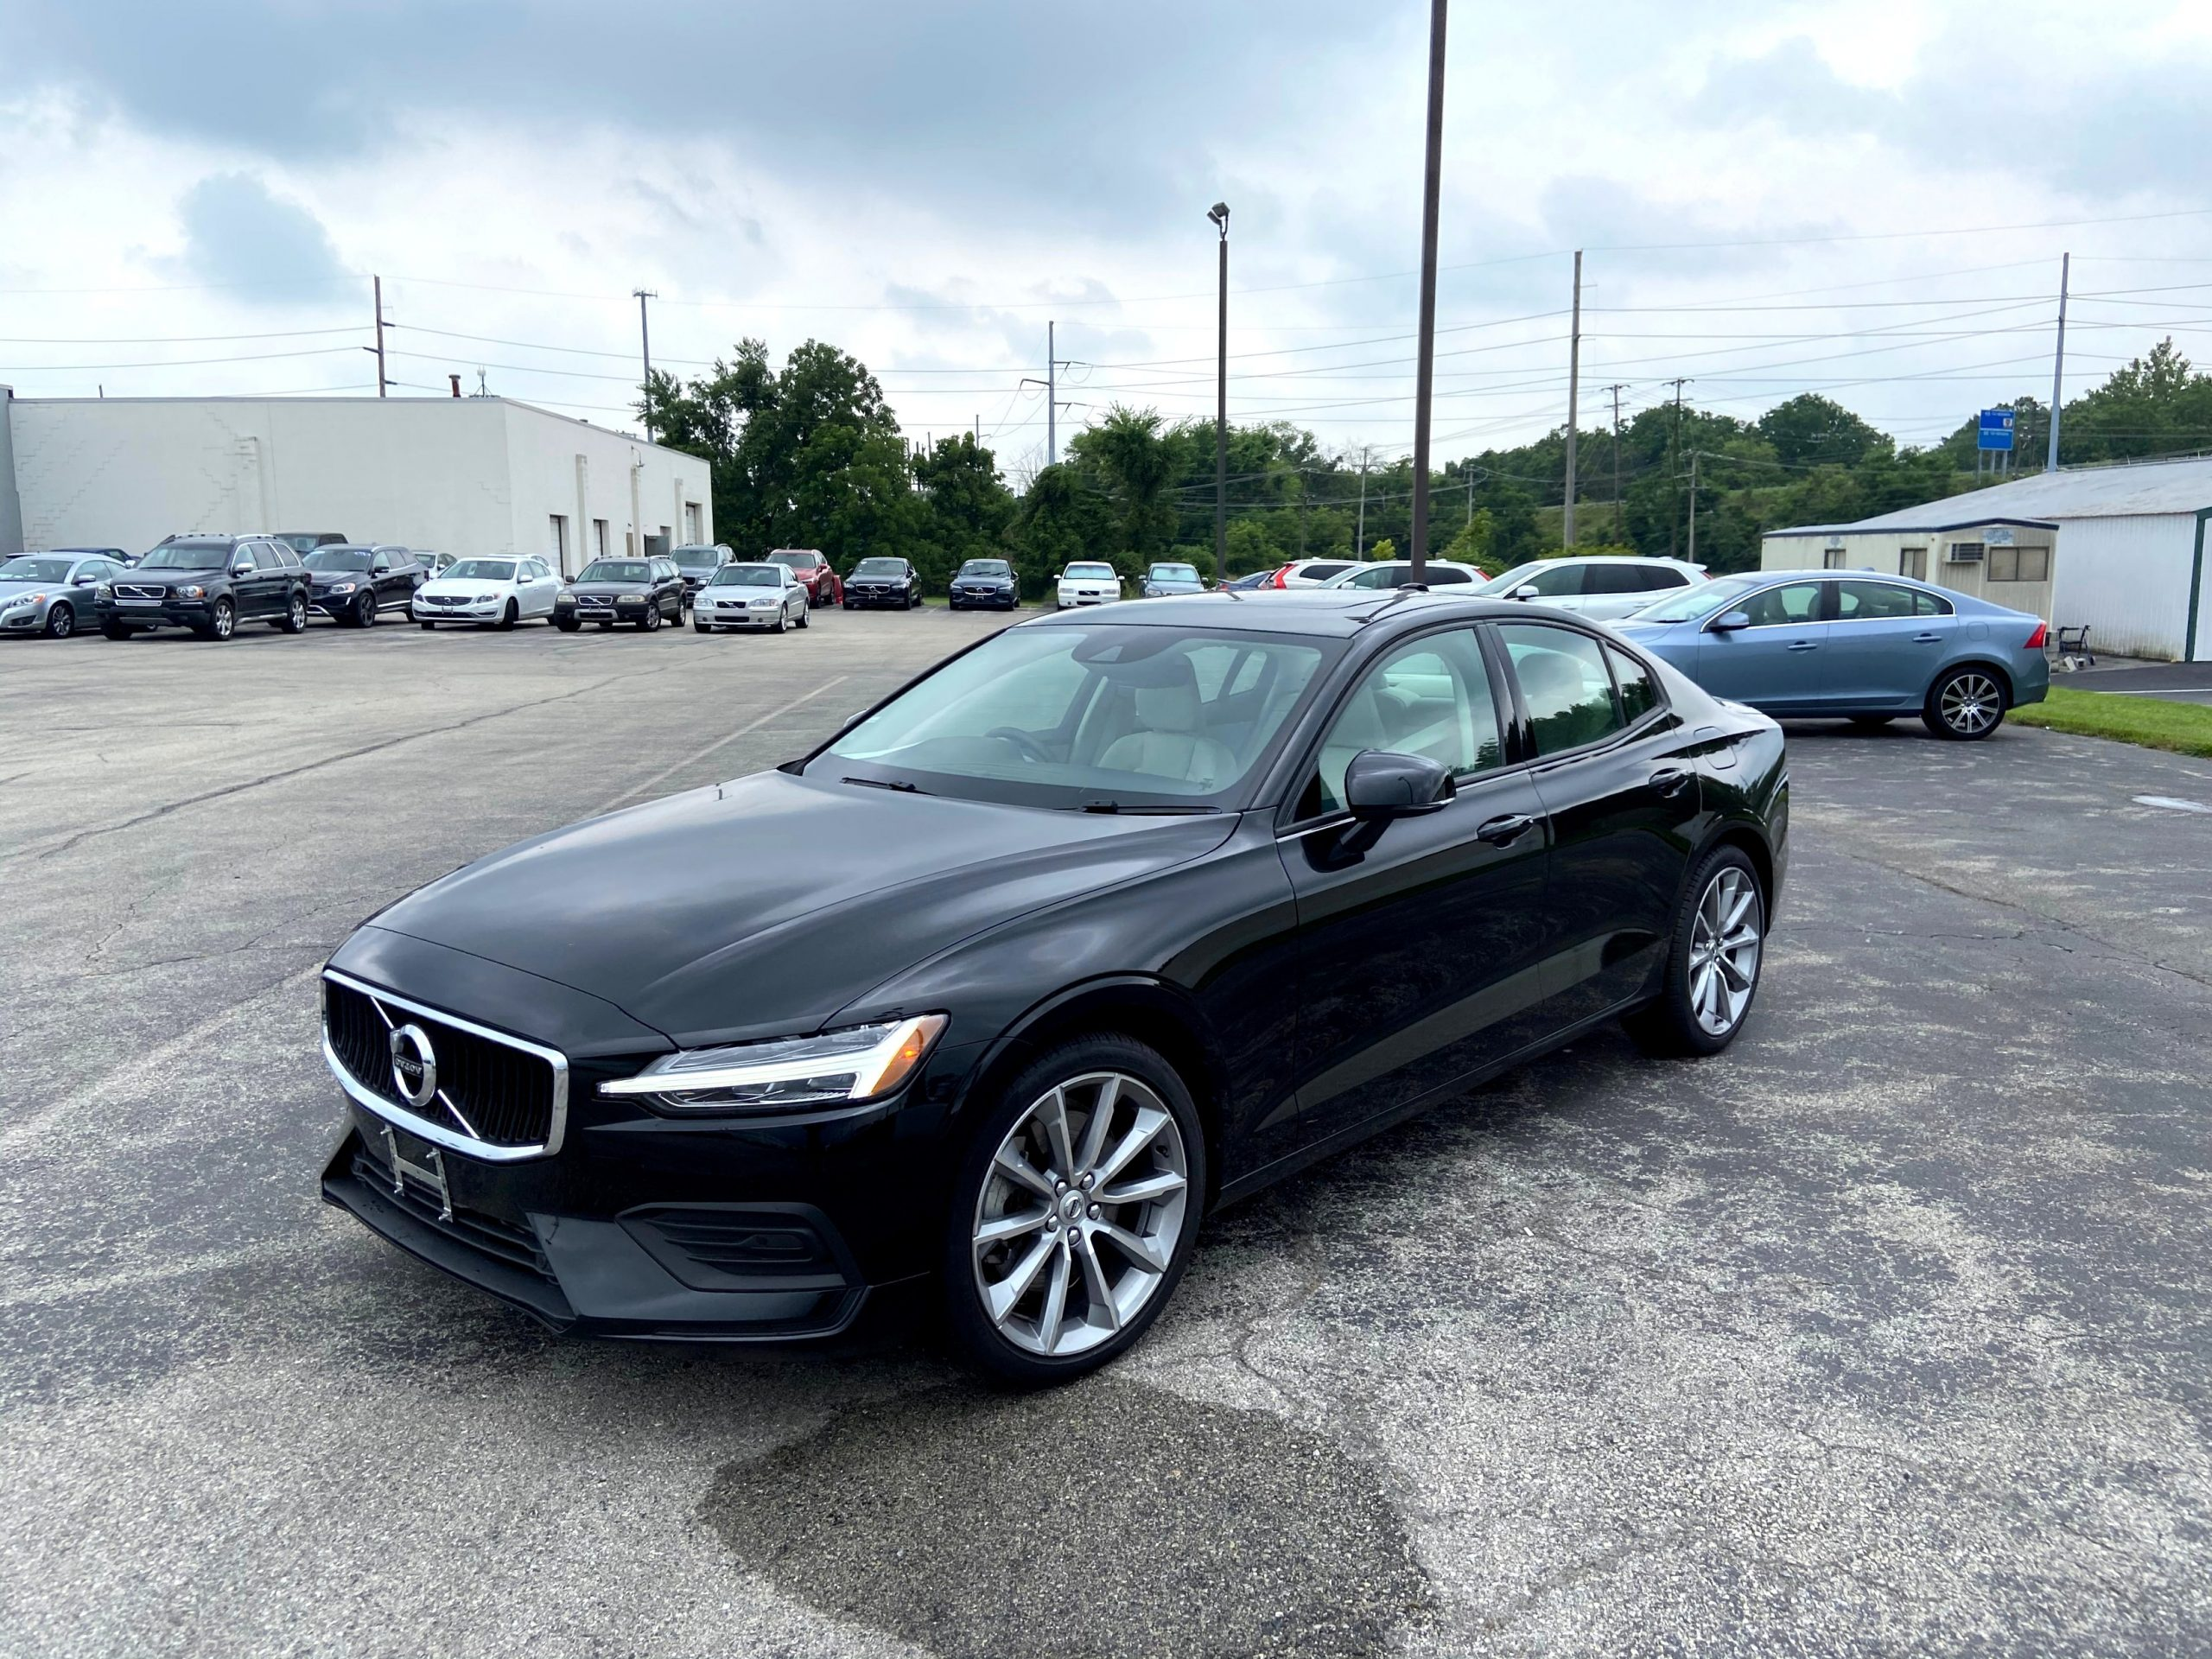 2020 used volvo s60 Price and Review